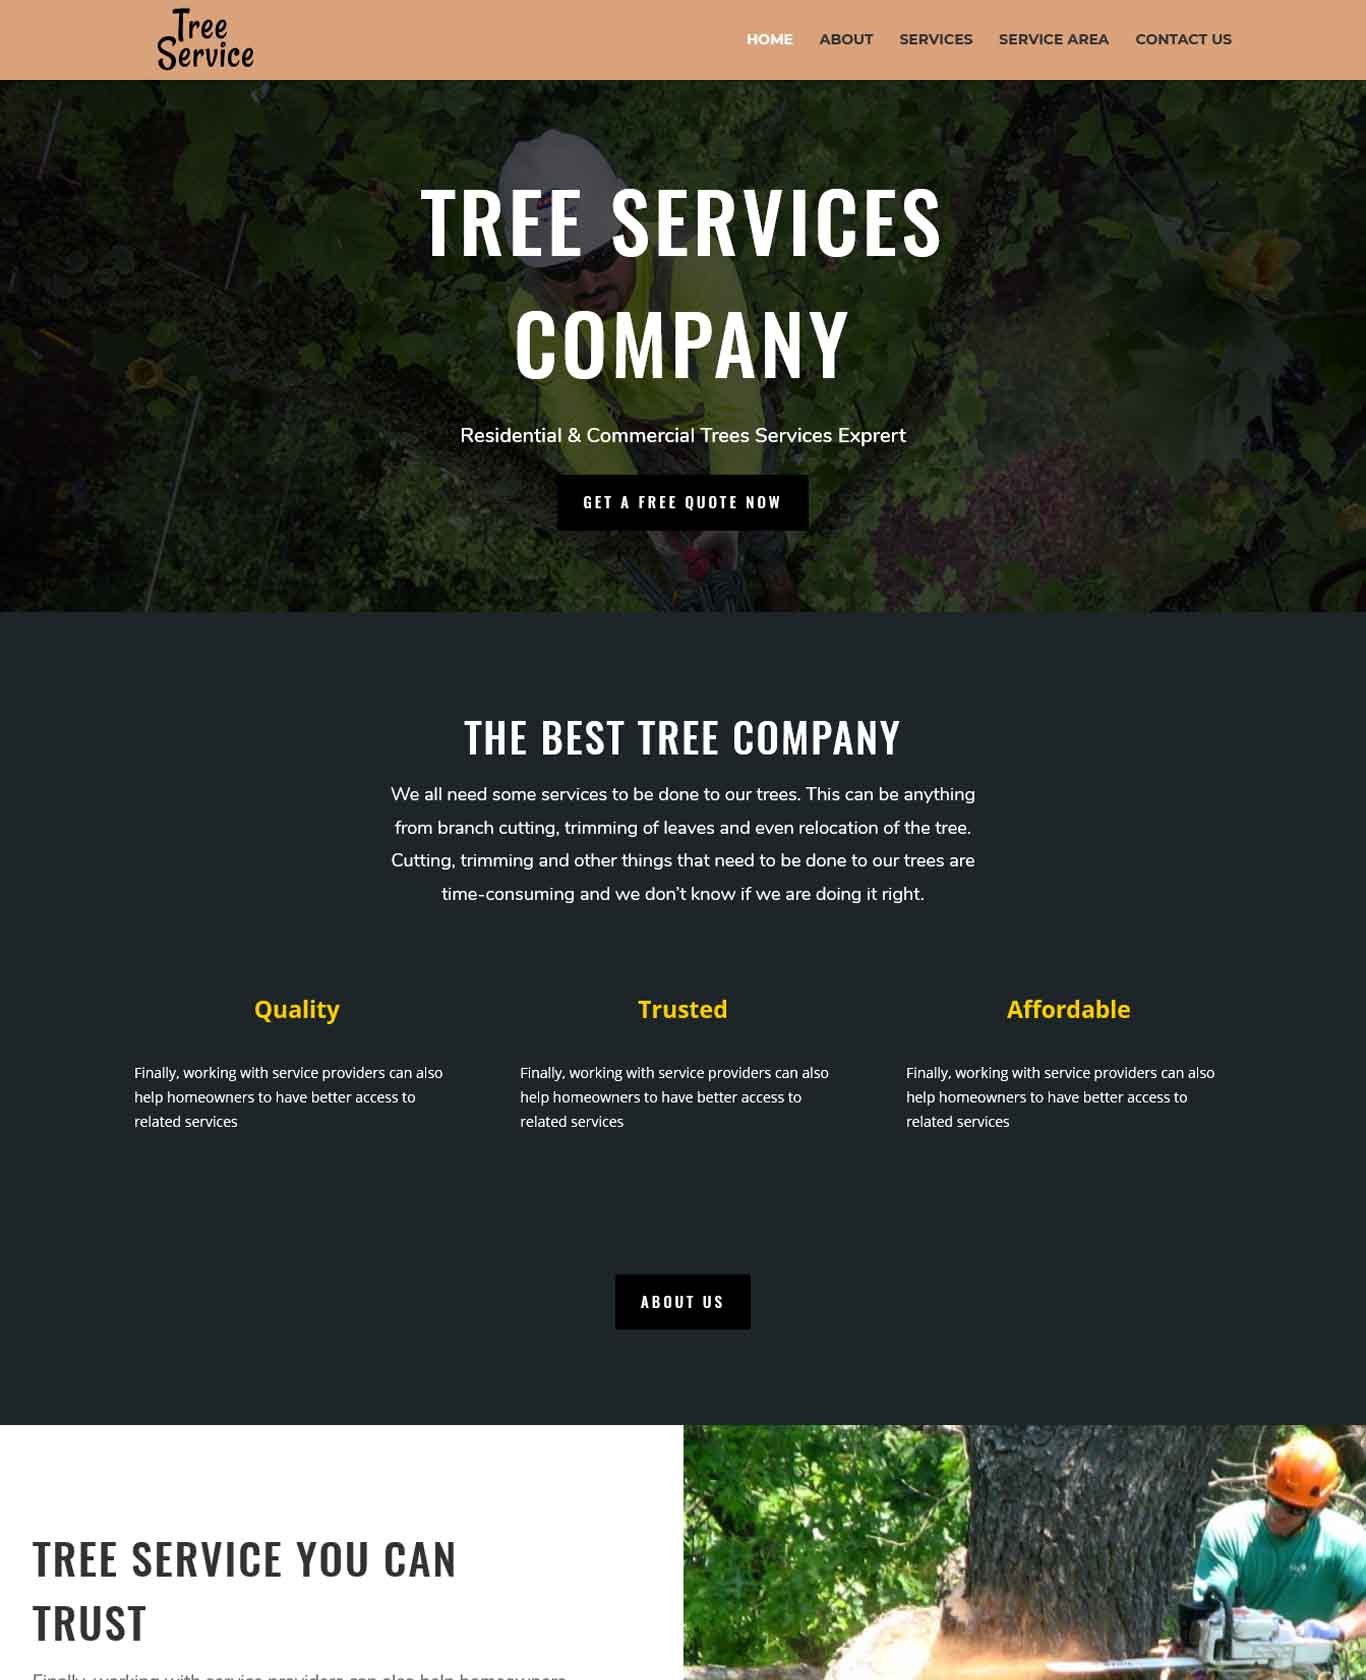 Tree Services Company Website Example